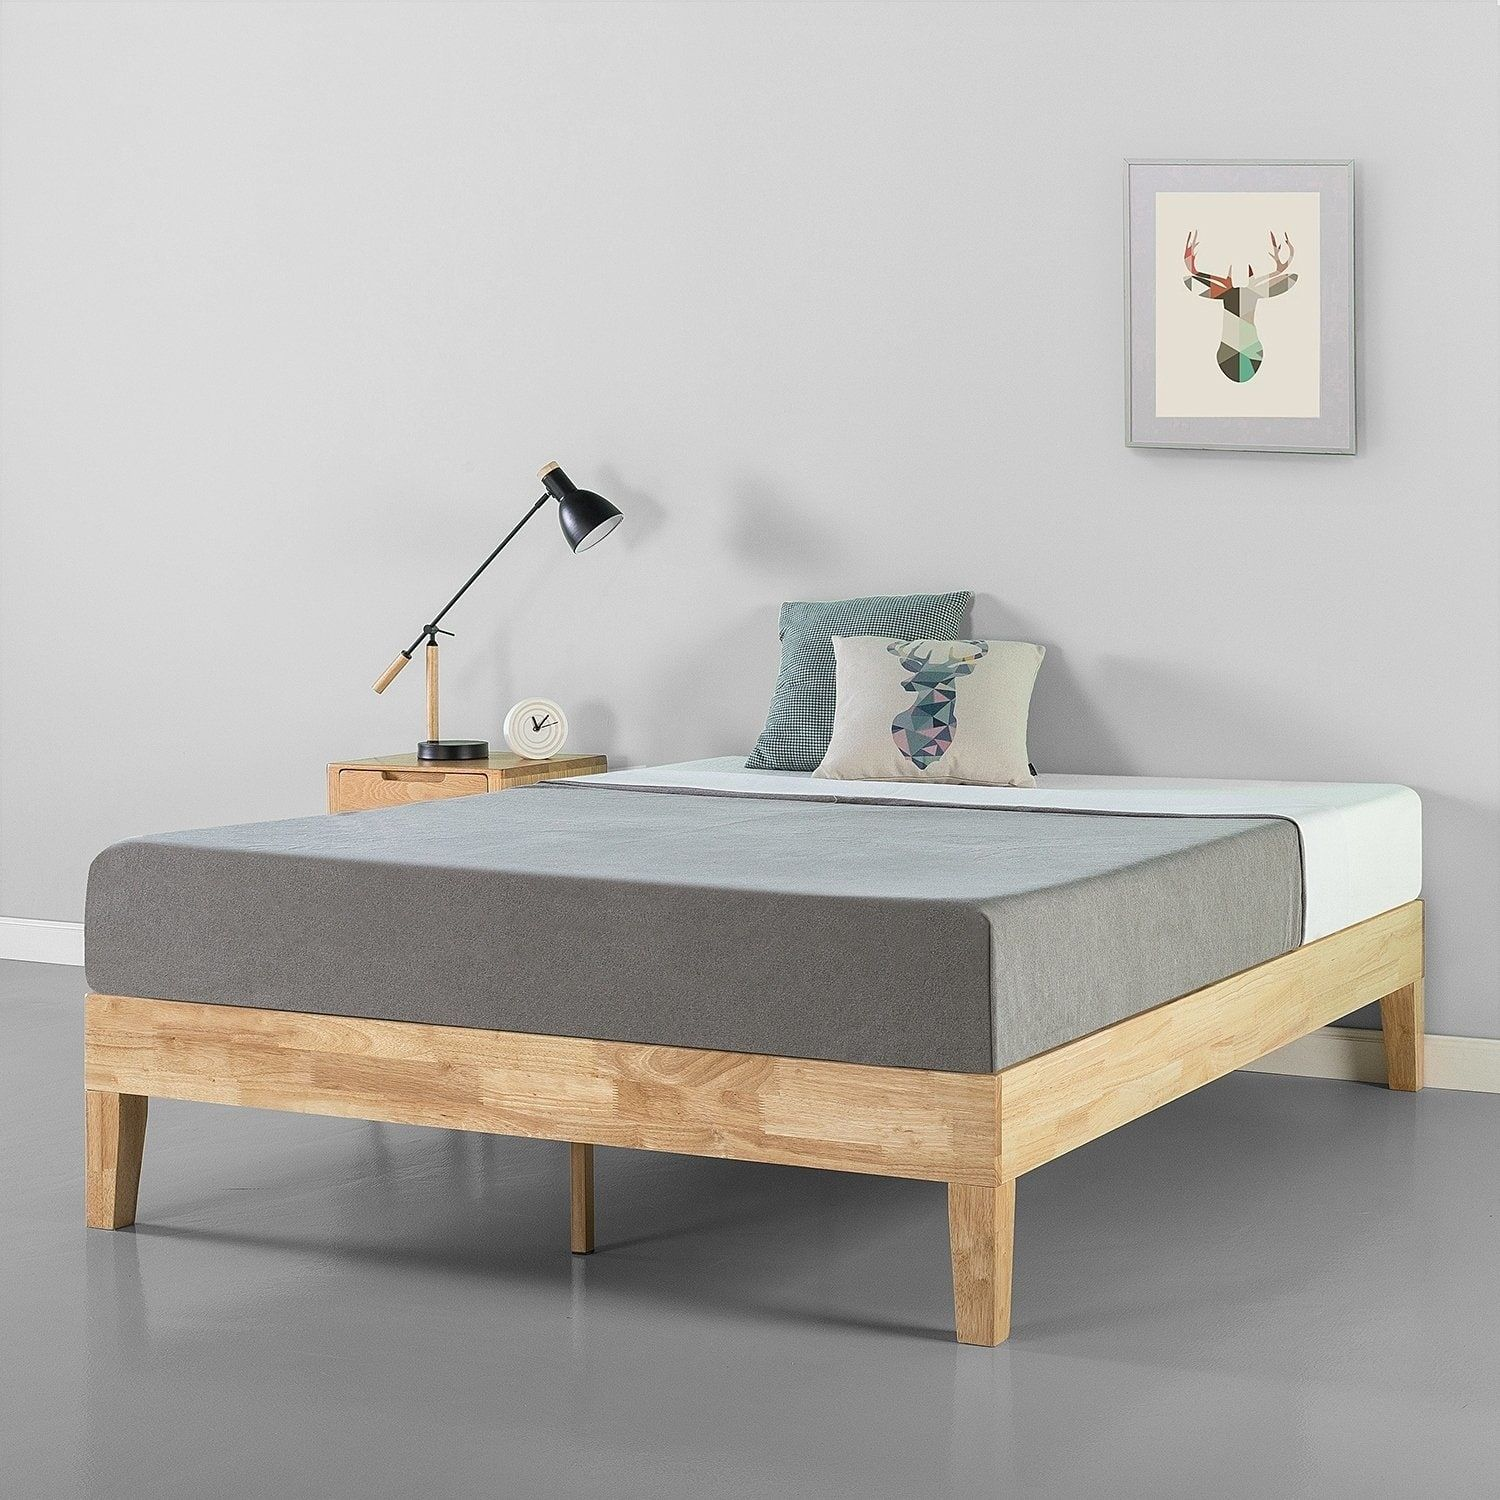 Priage By Zinus 14 Inch Deluxe Solid Wood Platform Bed With